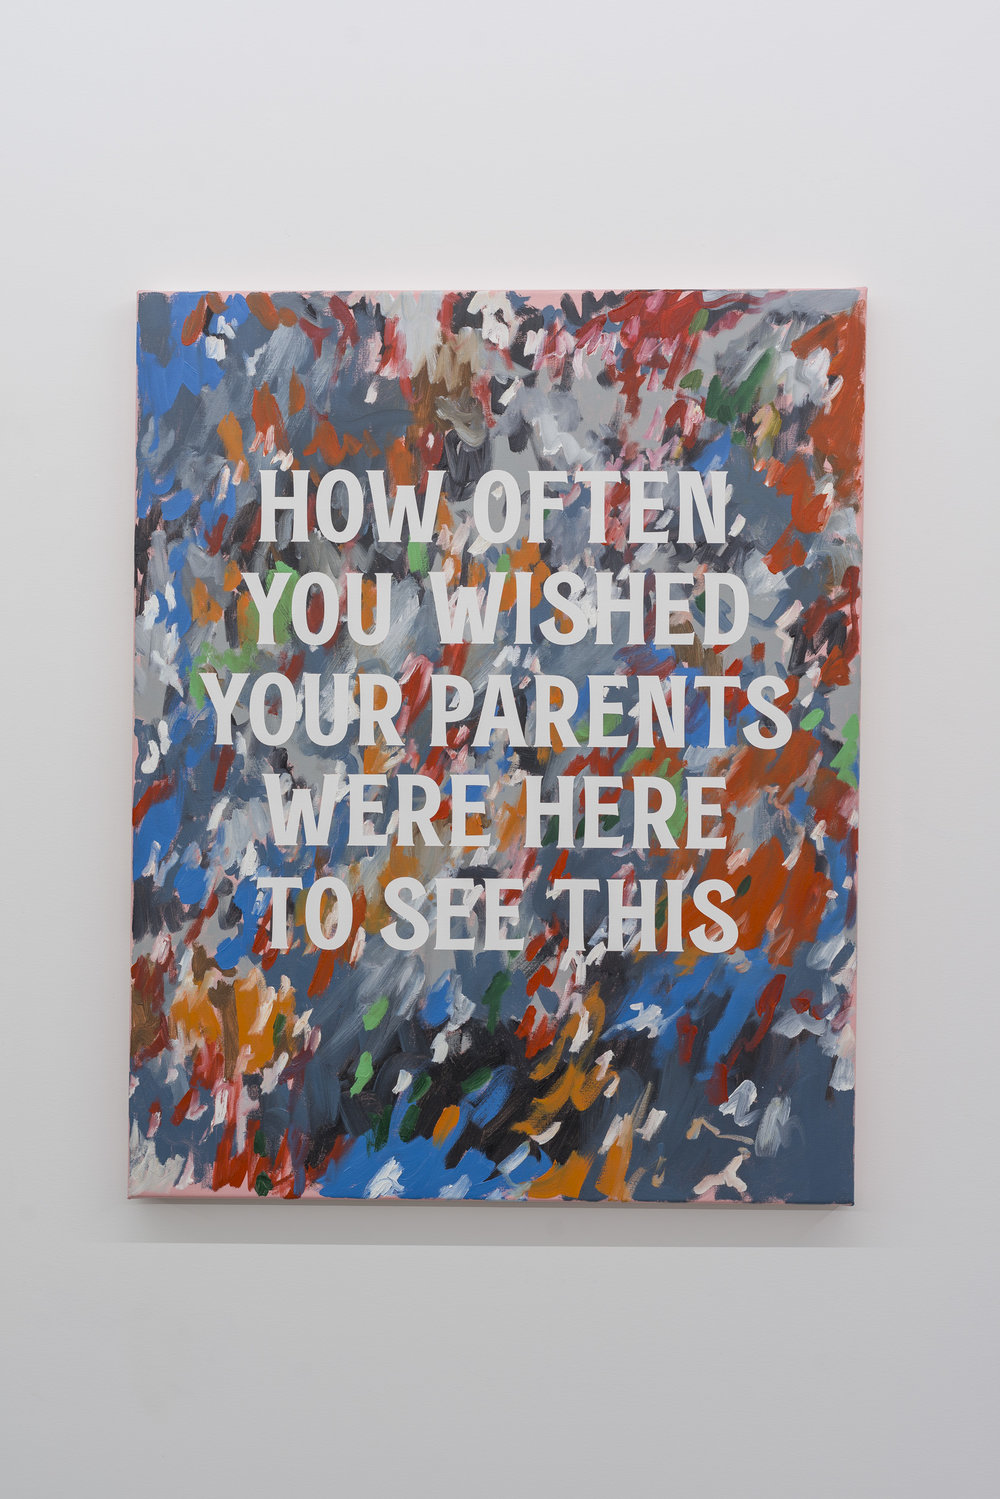 How Often You Wished Your Parents Were Here To See This,  2017  Oil on linen, 1015mm H x 800mm W, Available from  Tim Melville Gallery